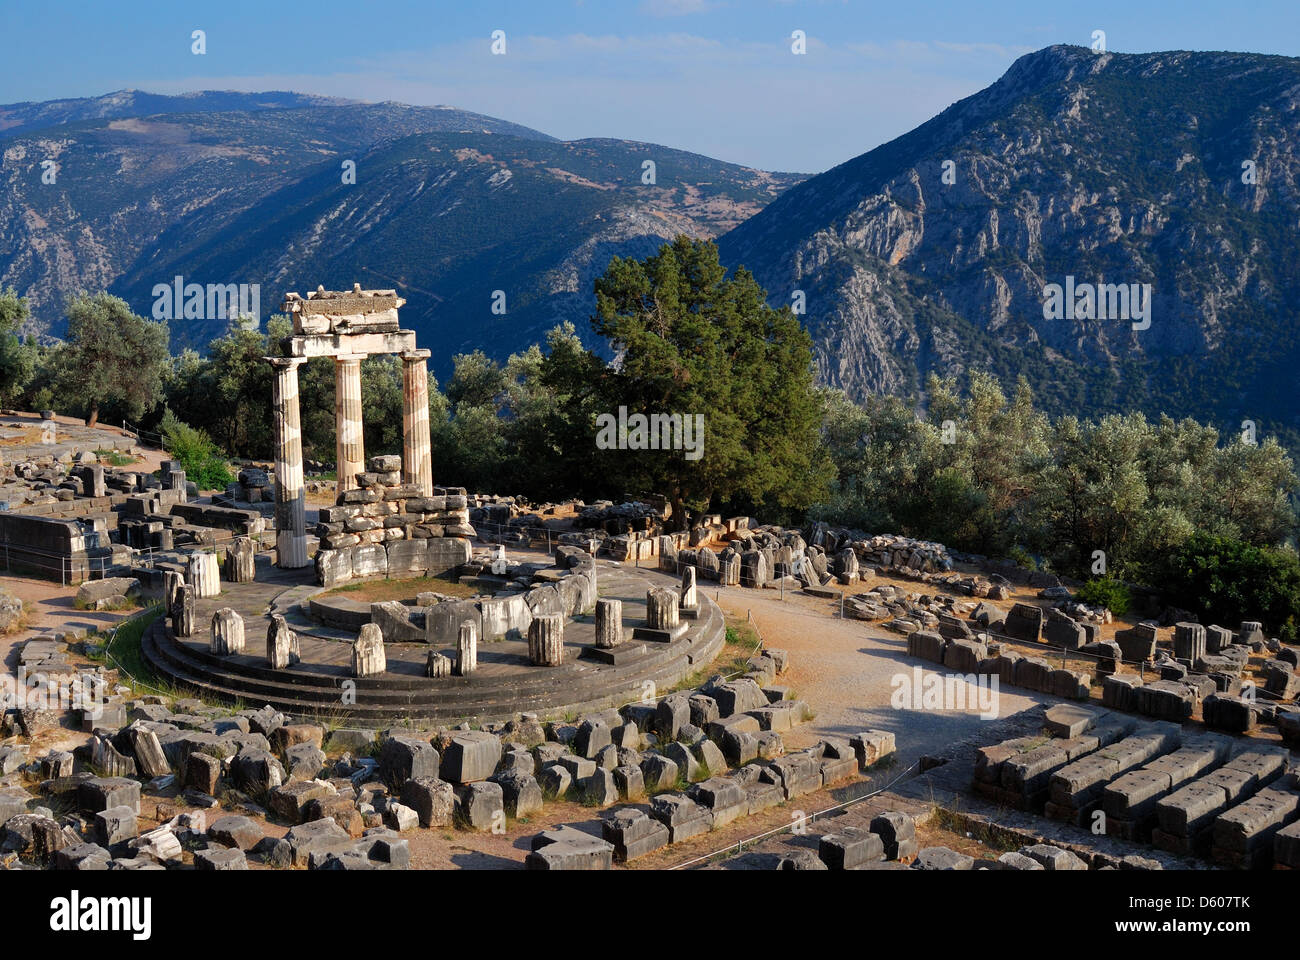 The Tholos at the sanctuary of Athena Pronaia is a circular building that was constructed between 380 and 360 BC. Stock Photo